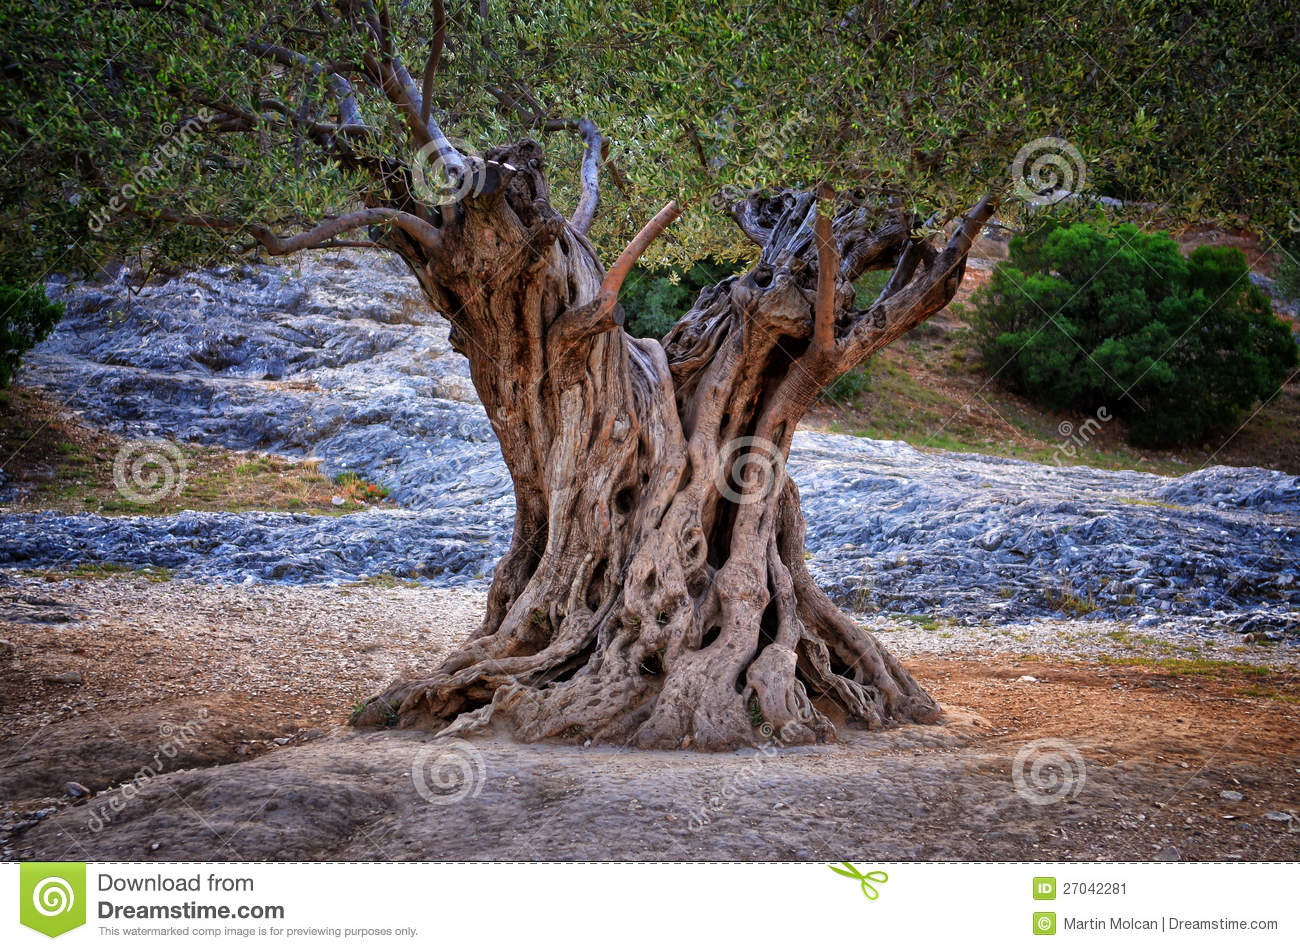 Download Old Olive Tree Trunk, Roots And Branches Stock Image - Image of plant, nature: 27042281